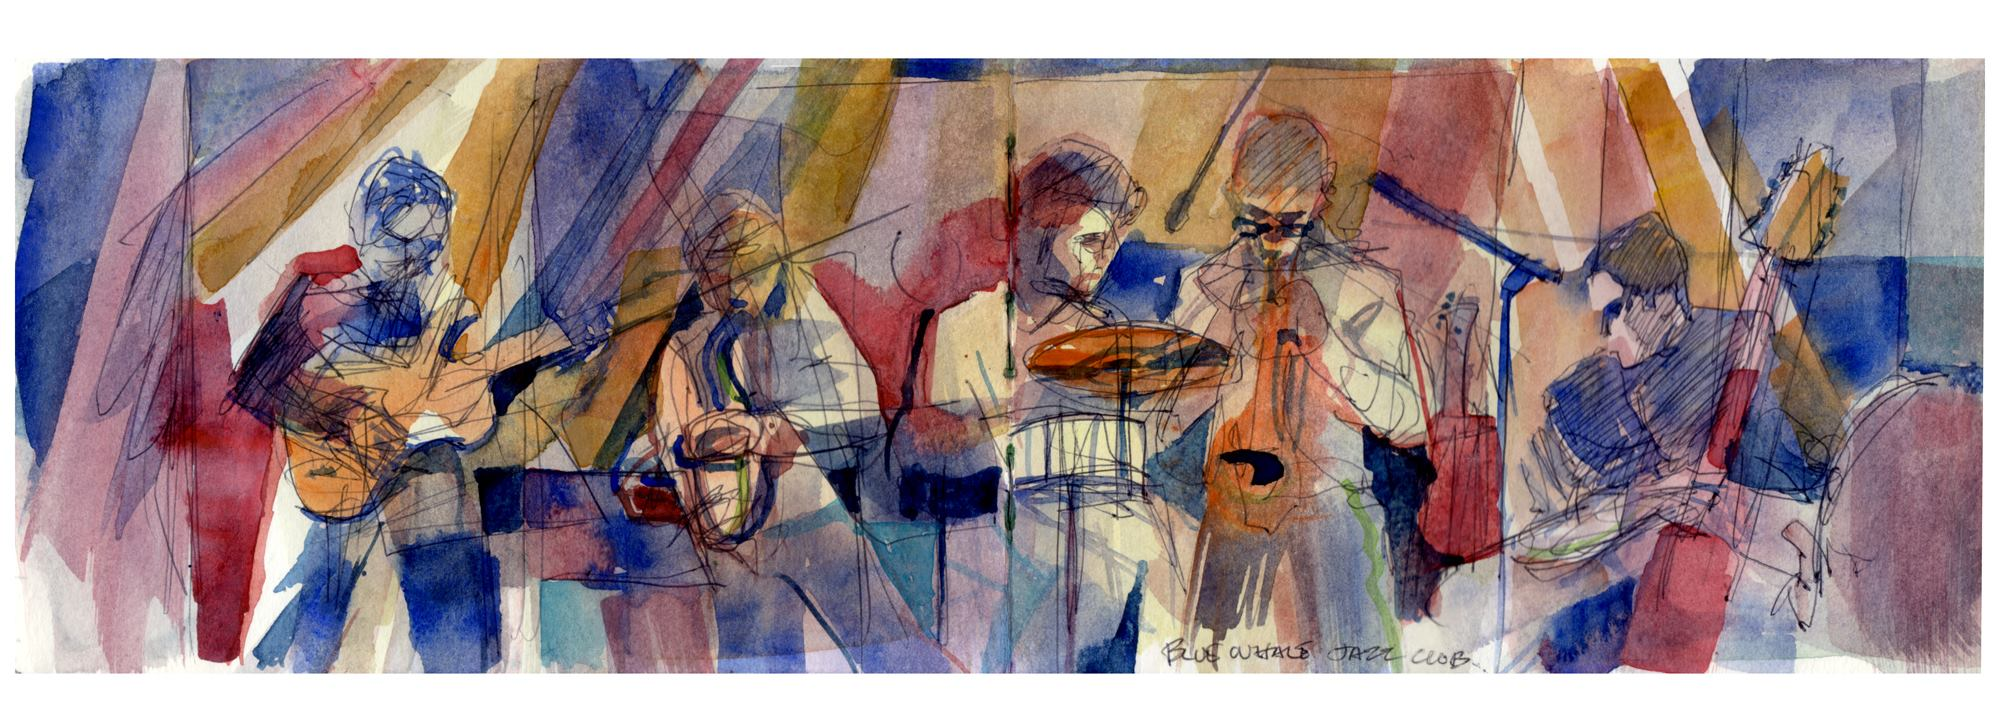 Artwork by Pete Morris - sketched during a live performance at the Blue Whale on September 14th, 2013.